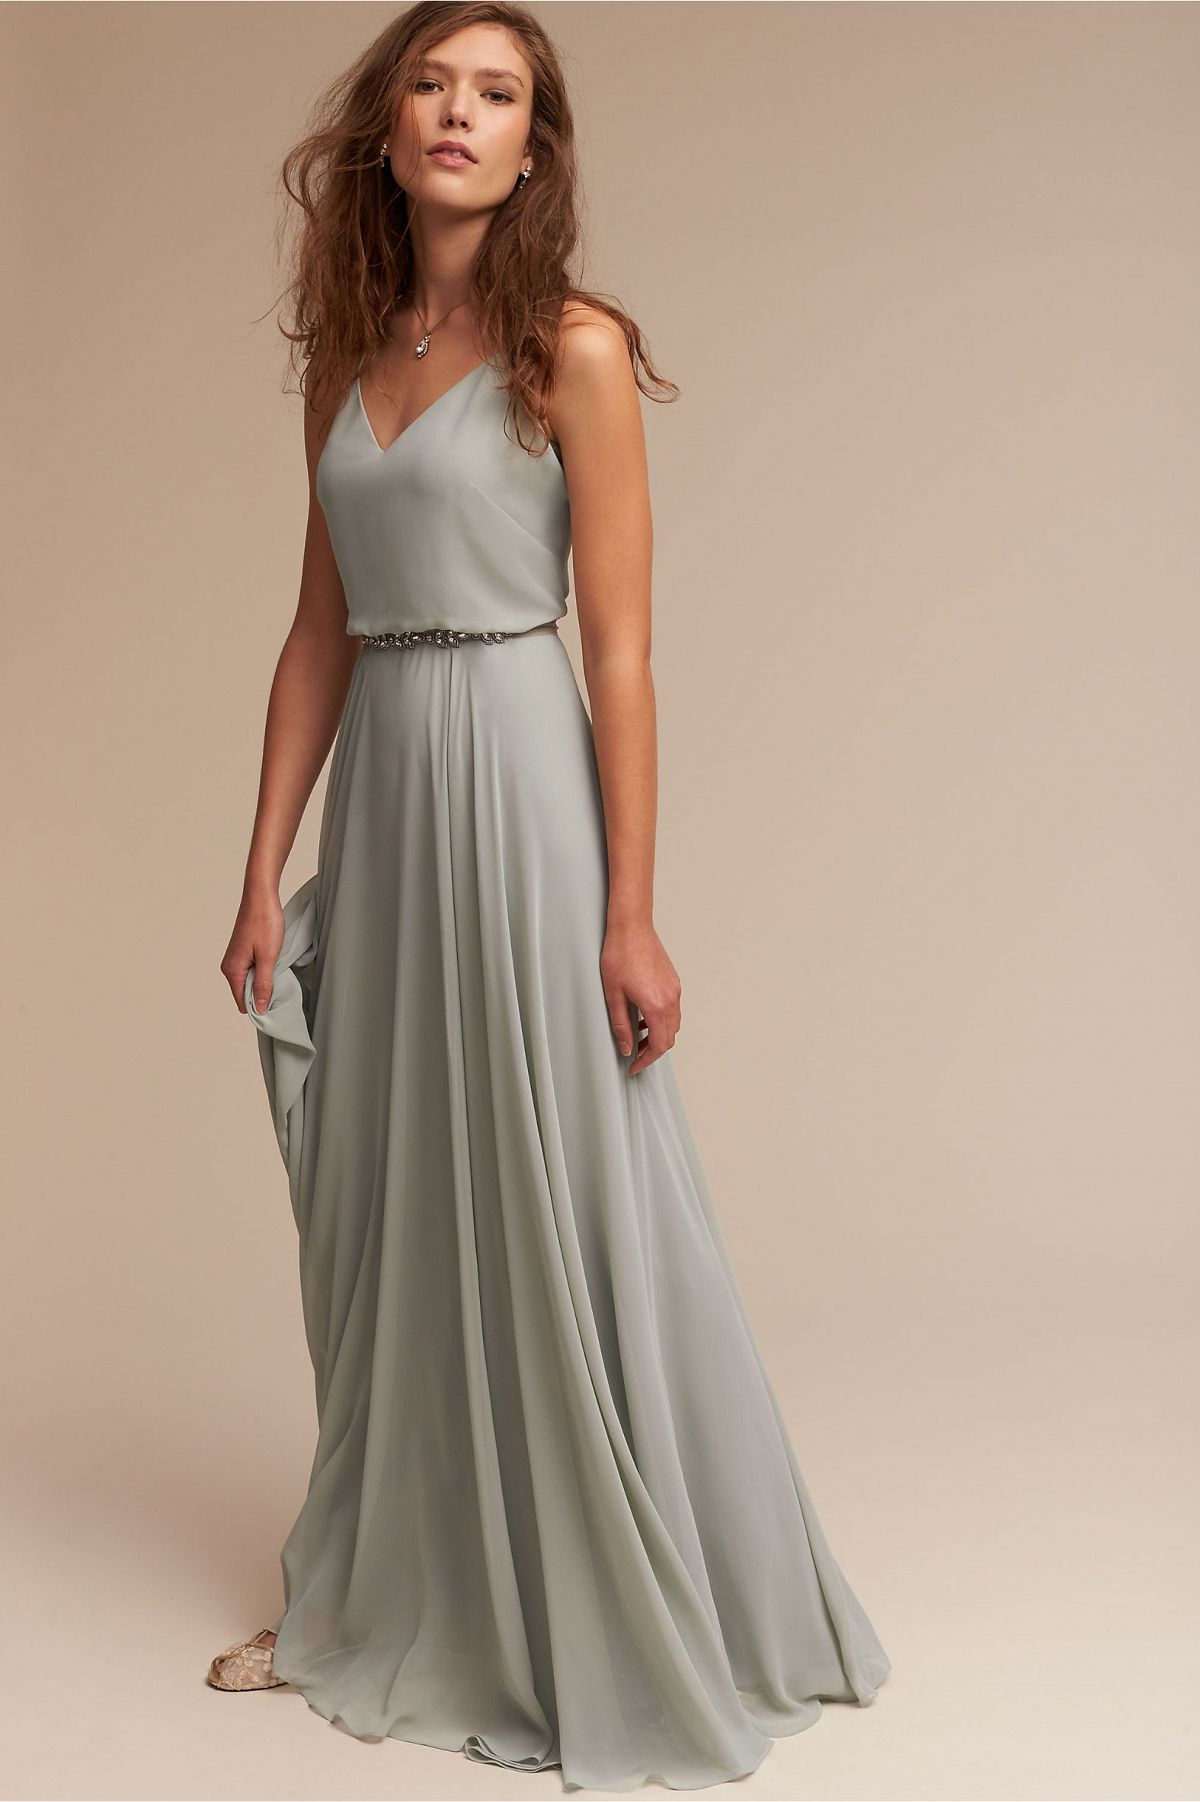 10 bridesmaid dresses you can wear again wedding sparrow 10 bridesmaid dresses you can wear again wedding sparrow ombrellifo Choice Image